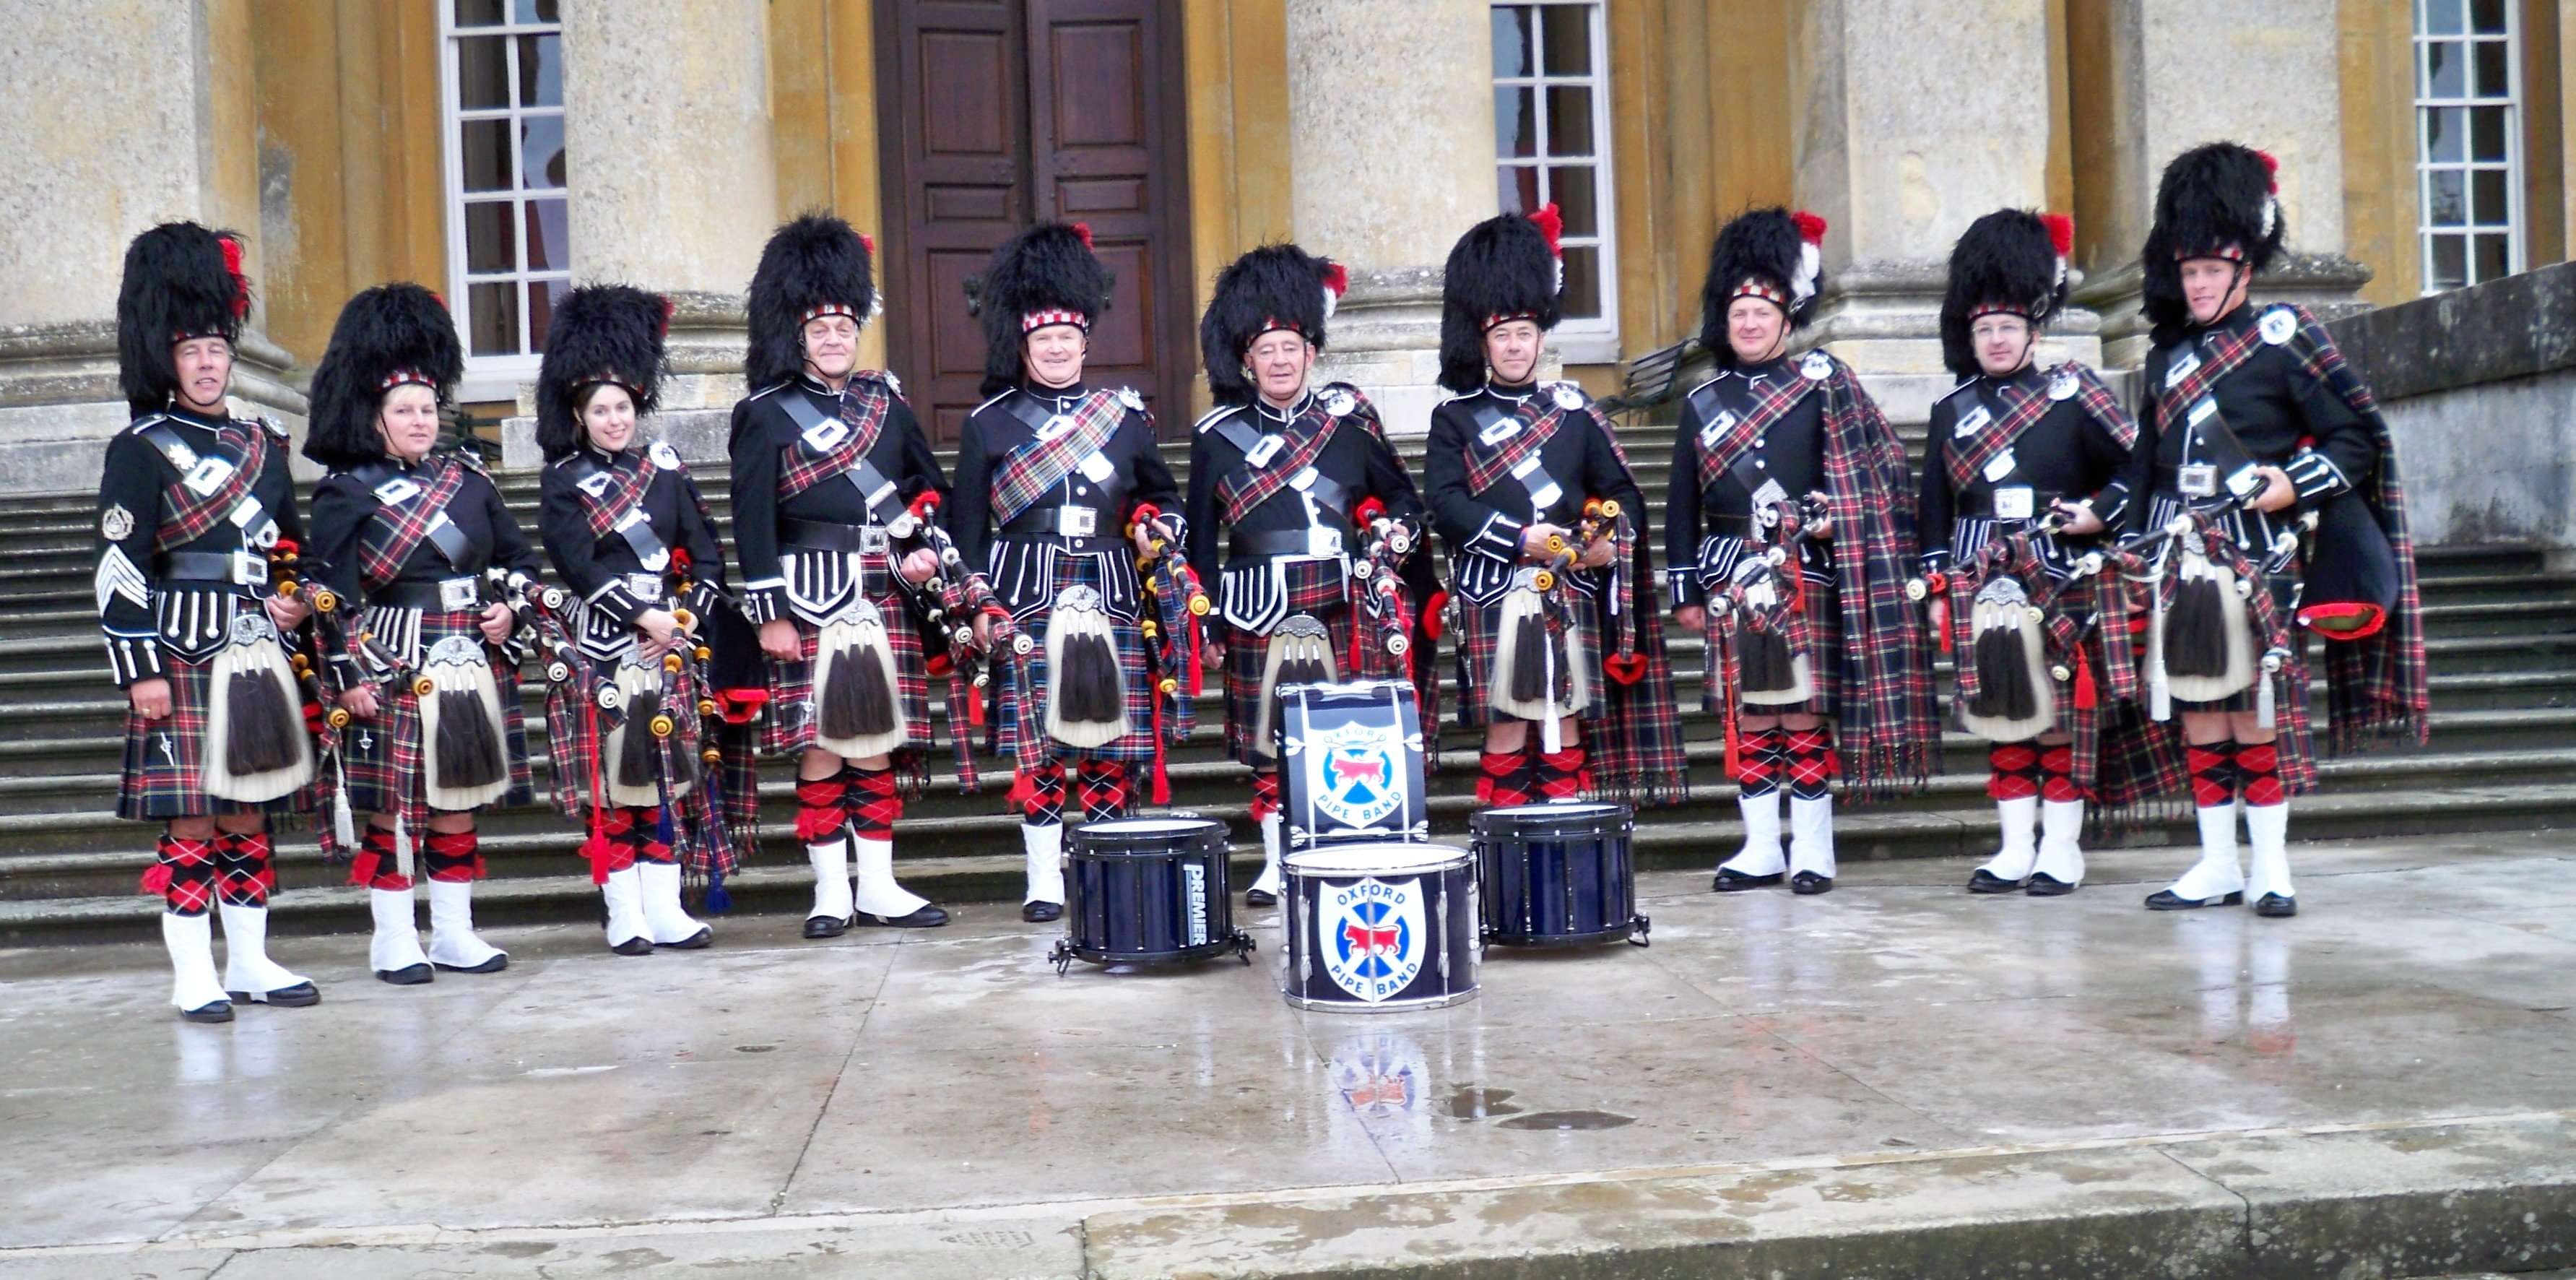 Oxford Pipes & Drums